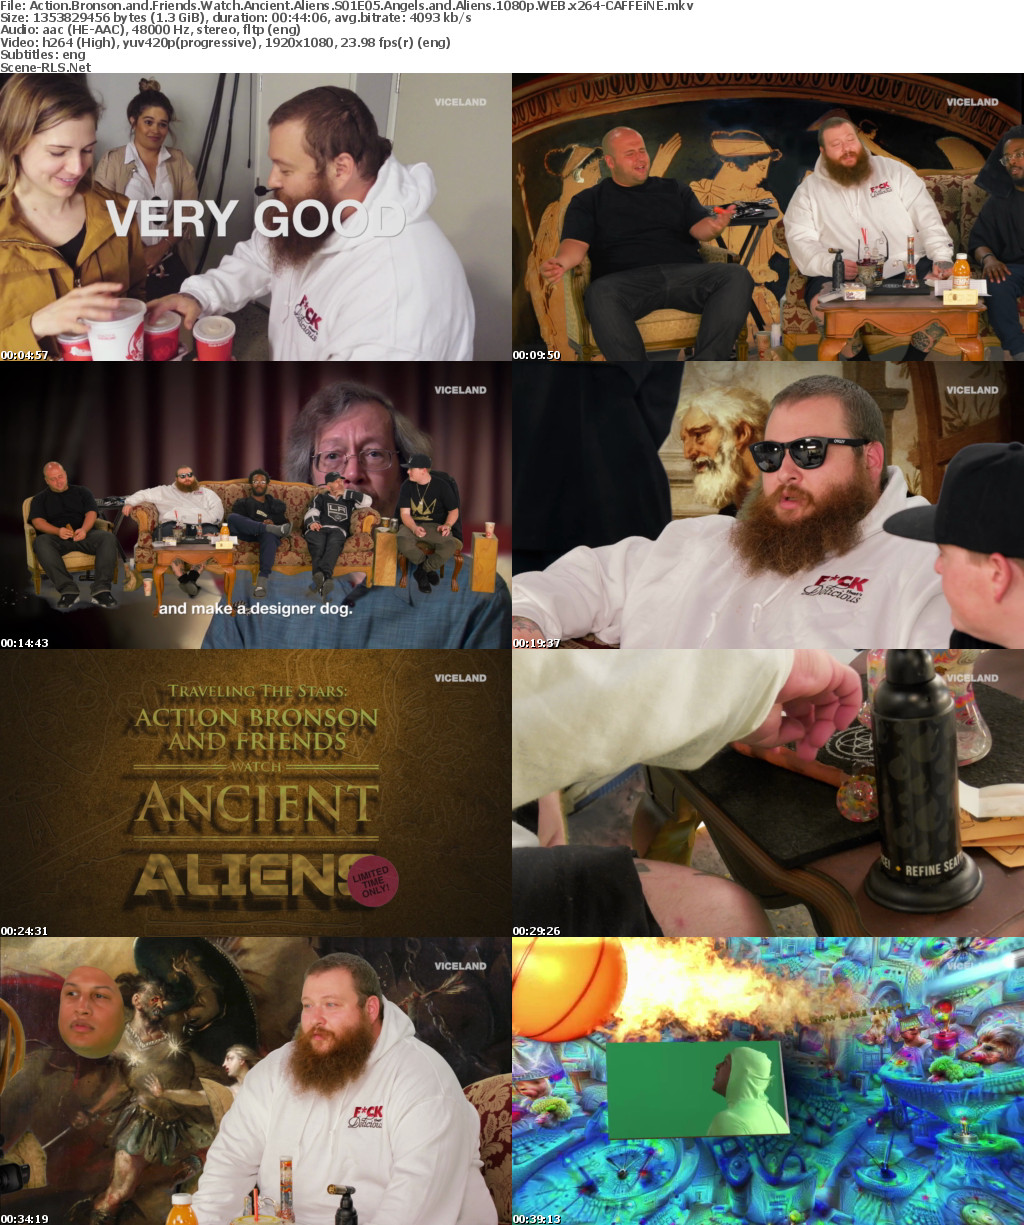 Action Bronson and Friends Watch Ancient Aliens S01E05